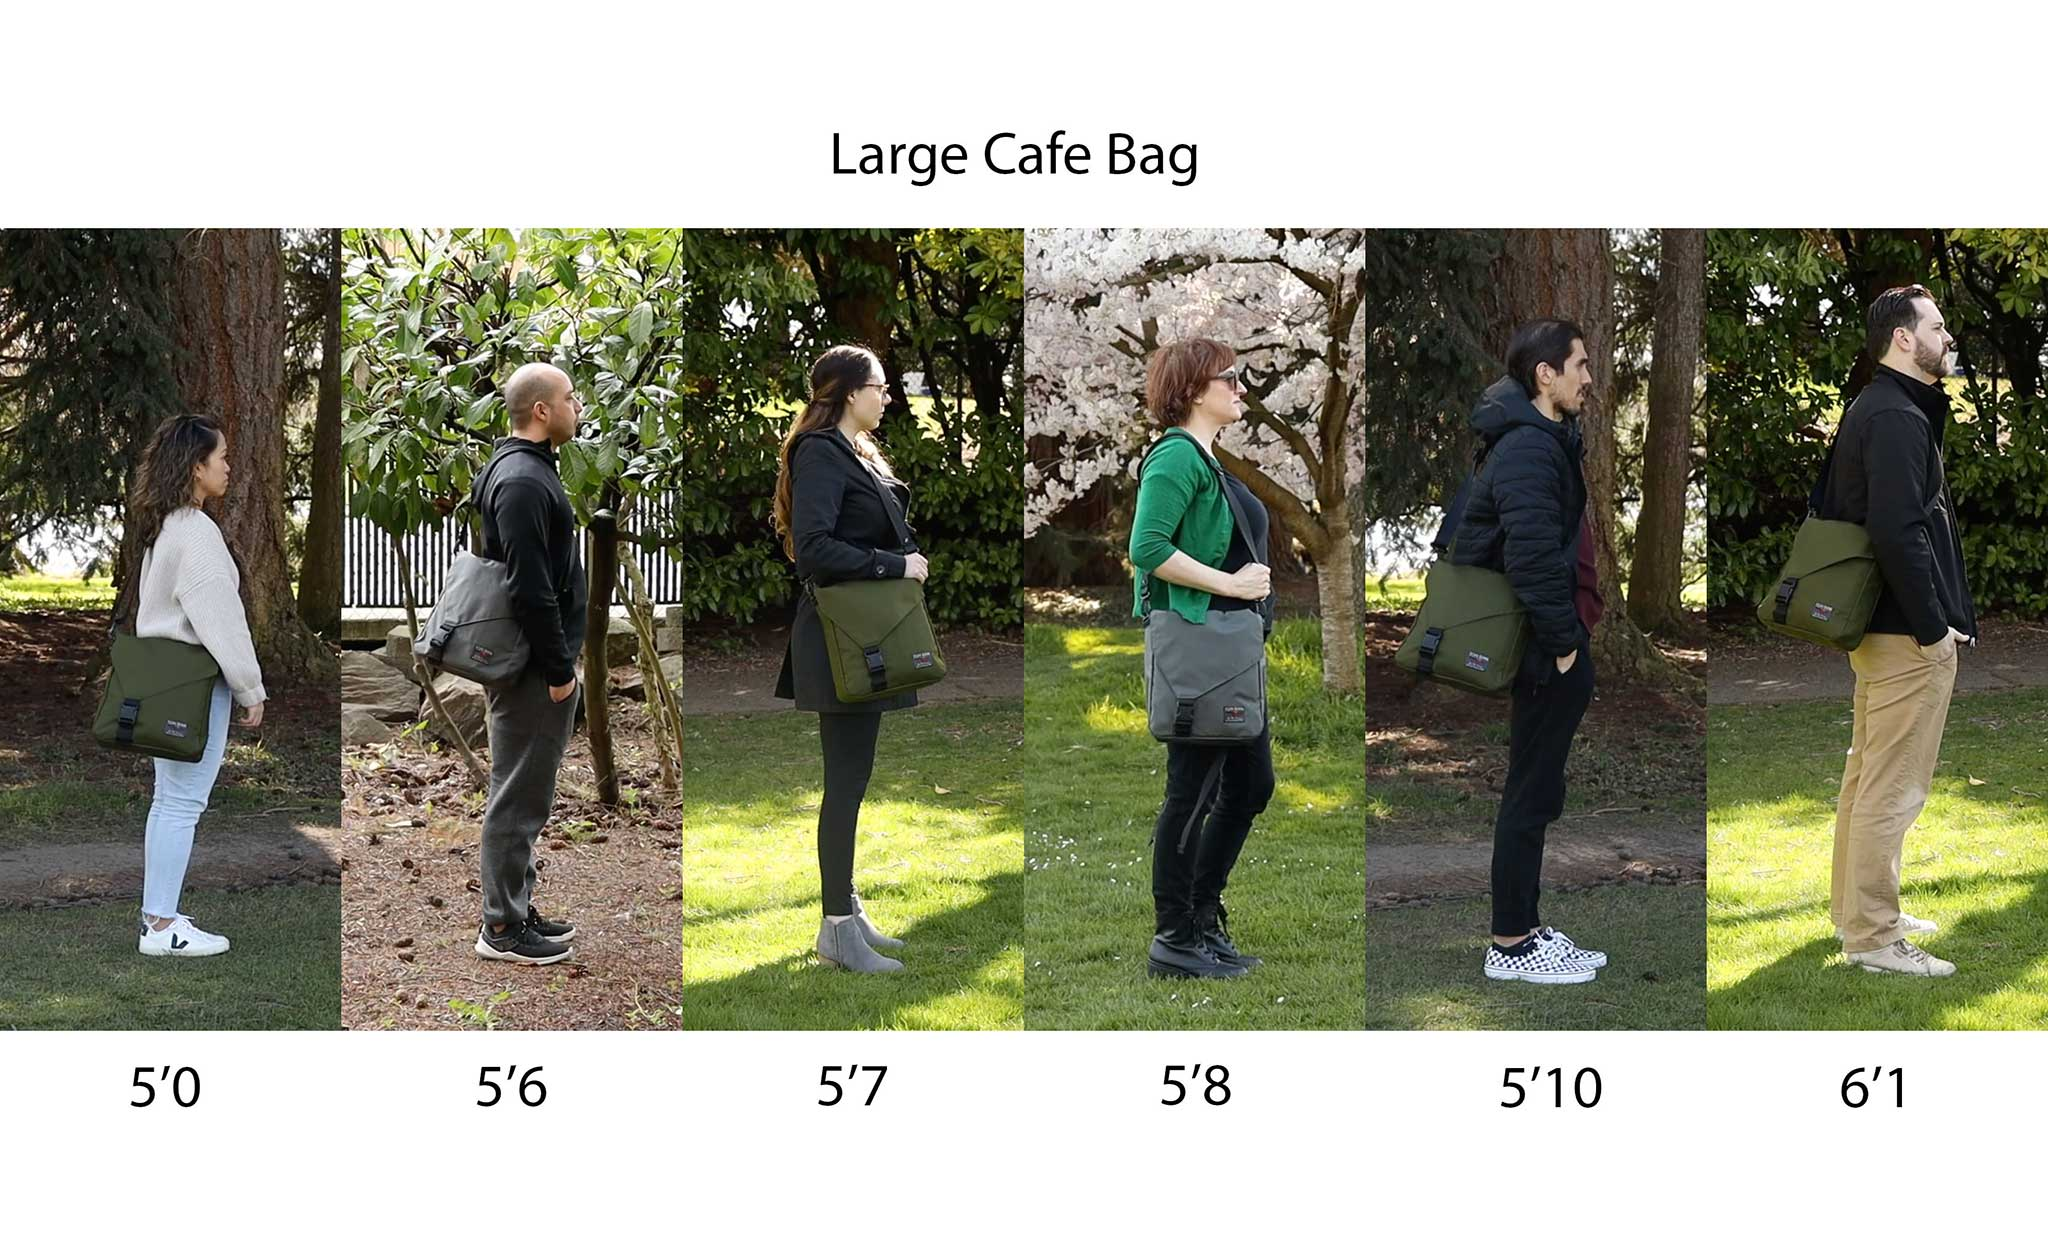 Large Cafe Bag being worn by people of various heights standing side-by-side